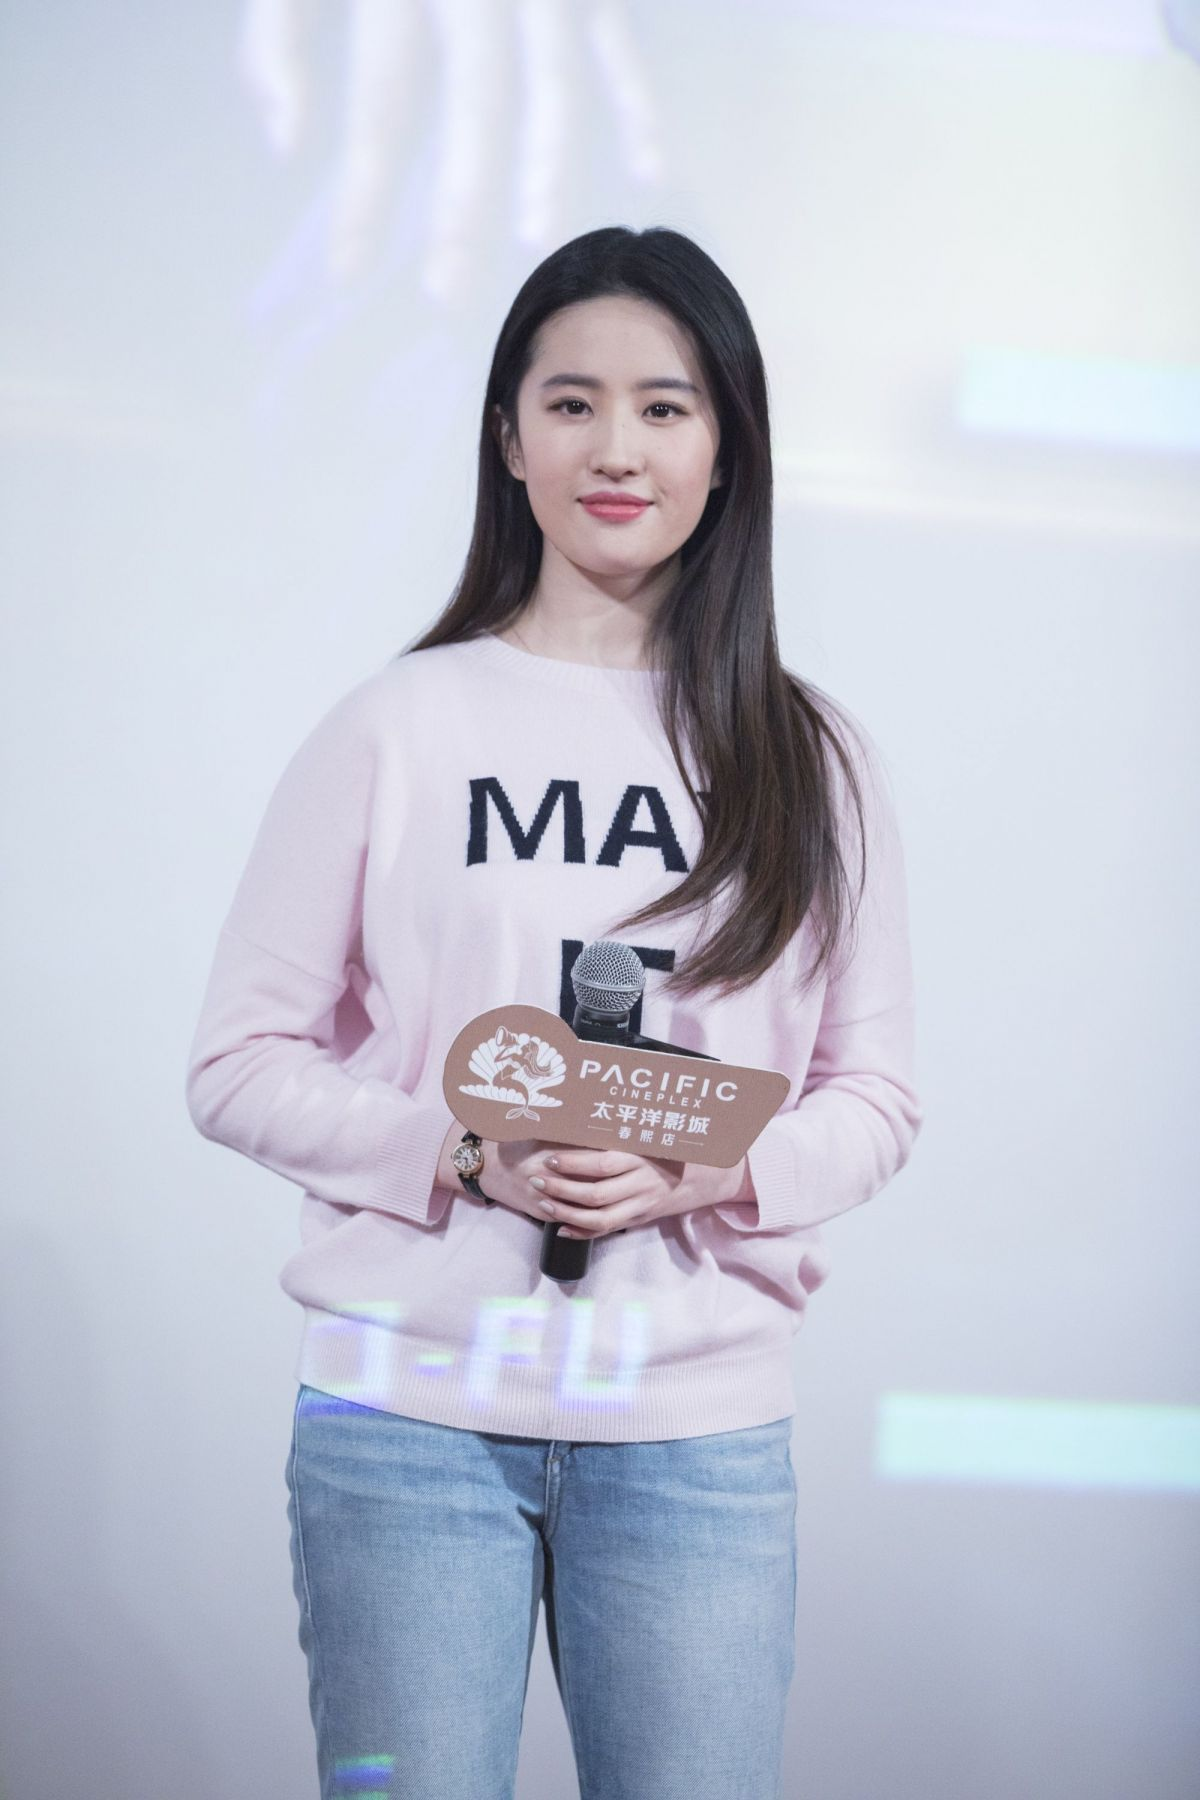 Liu Yifei At Hnson And The Beast Photocall In Chengdu City 12 20